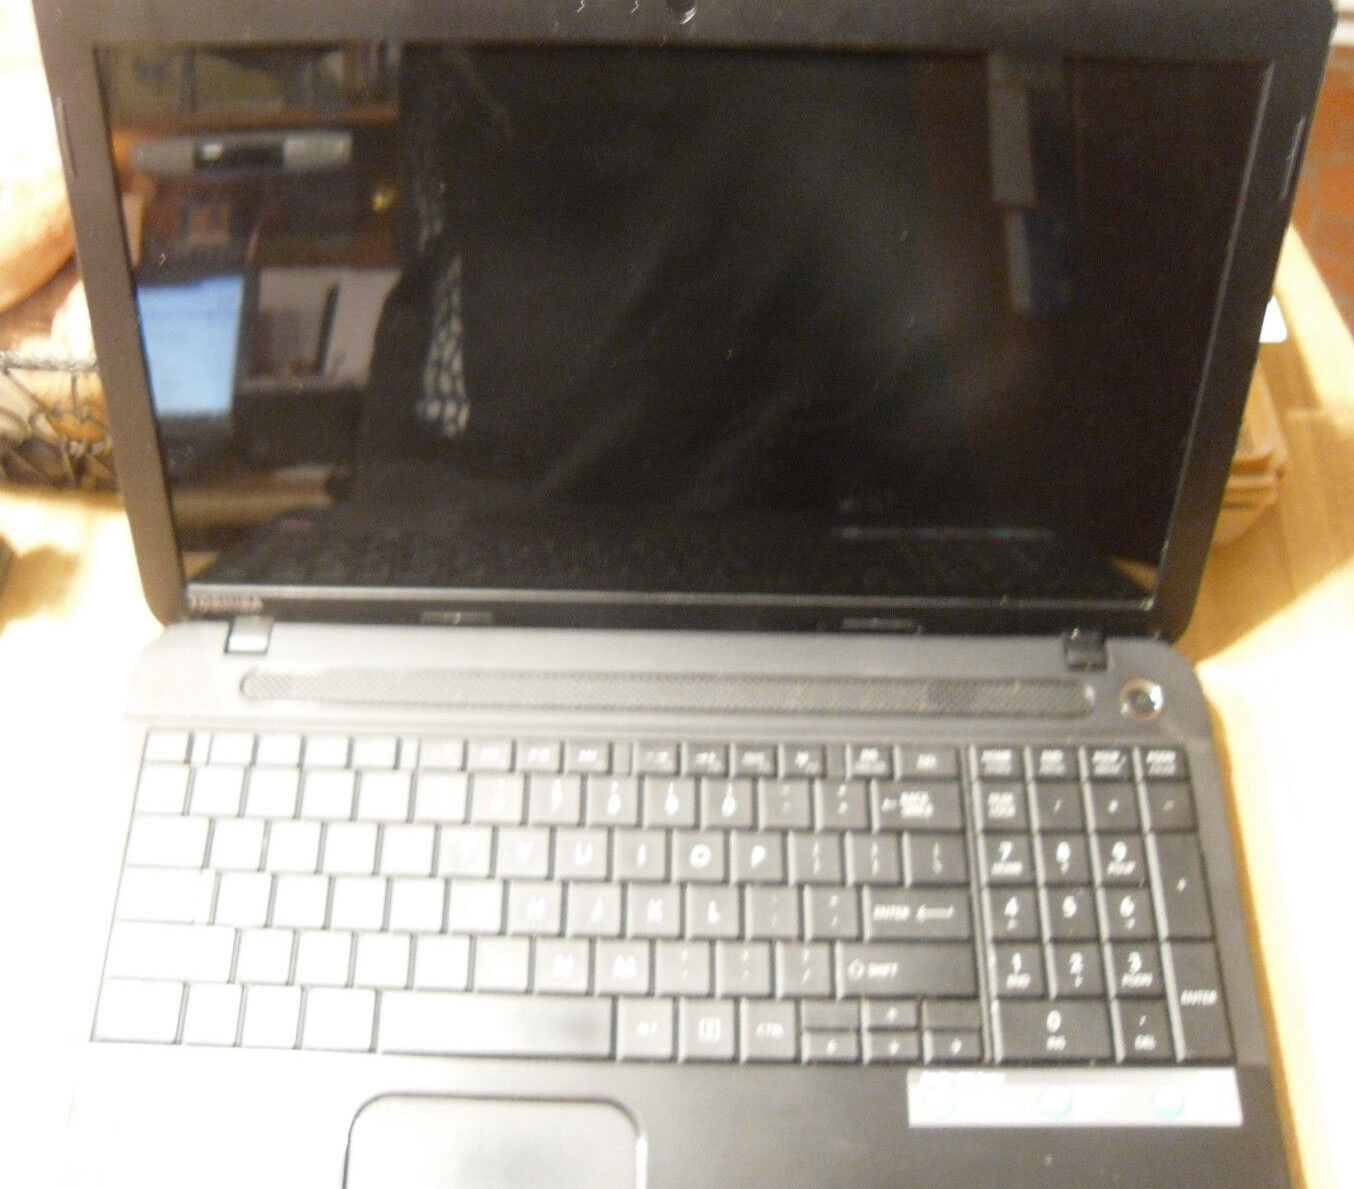 Toshiba Satellite C55-A5145 laptop AS IS for PARTS/REPAIR only-reduced 5%